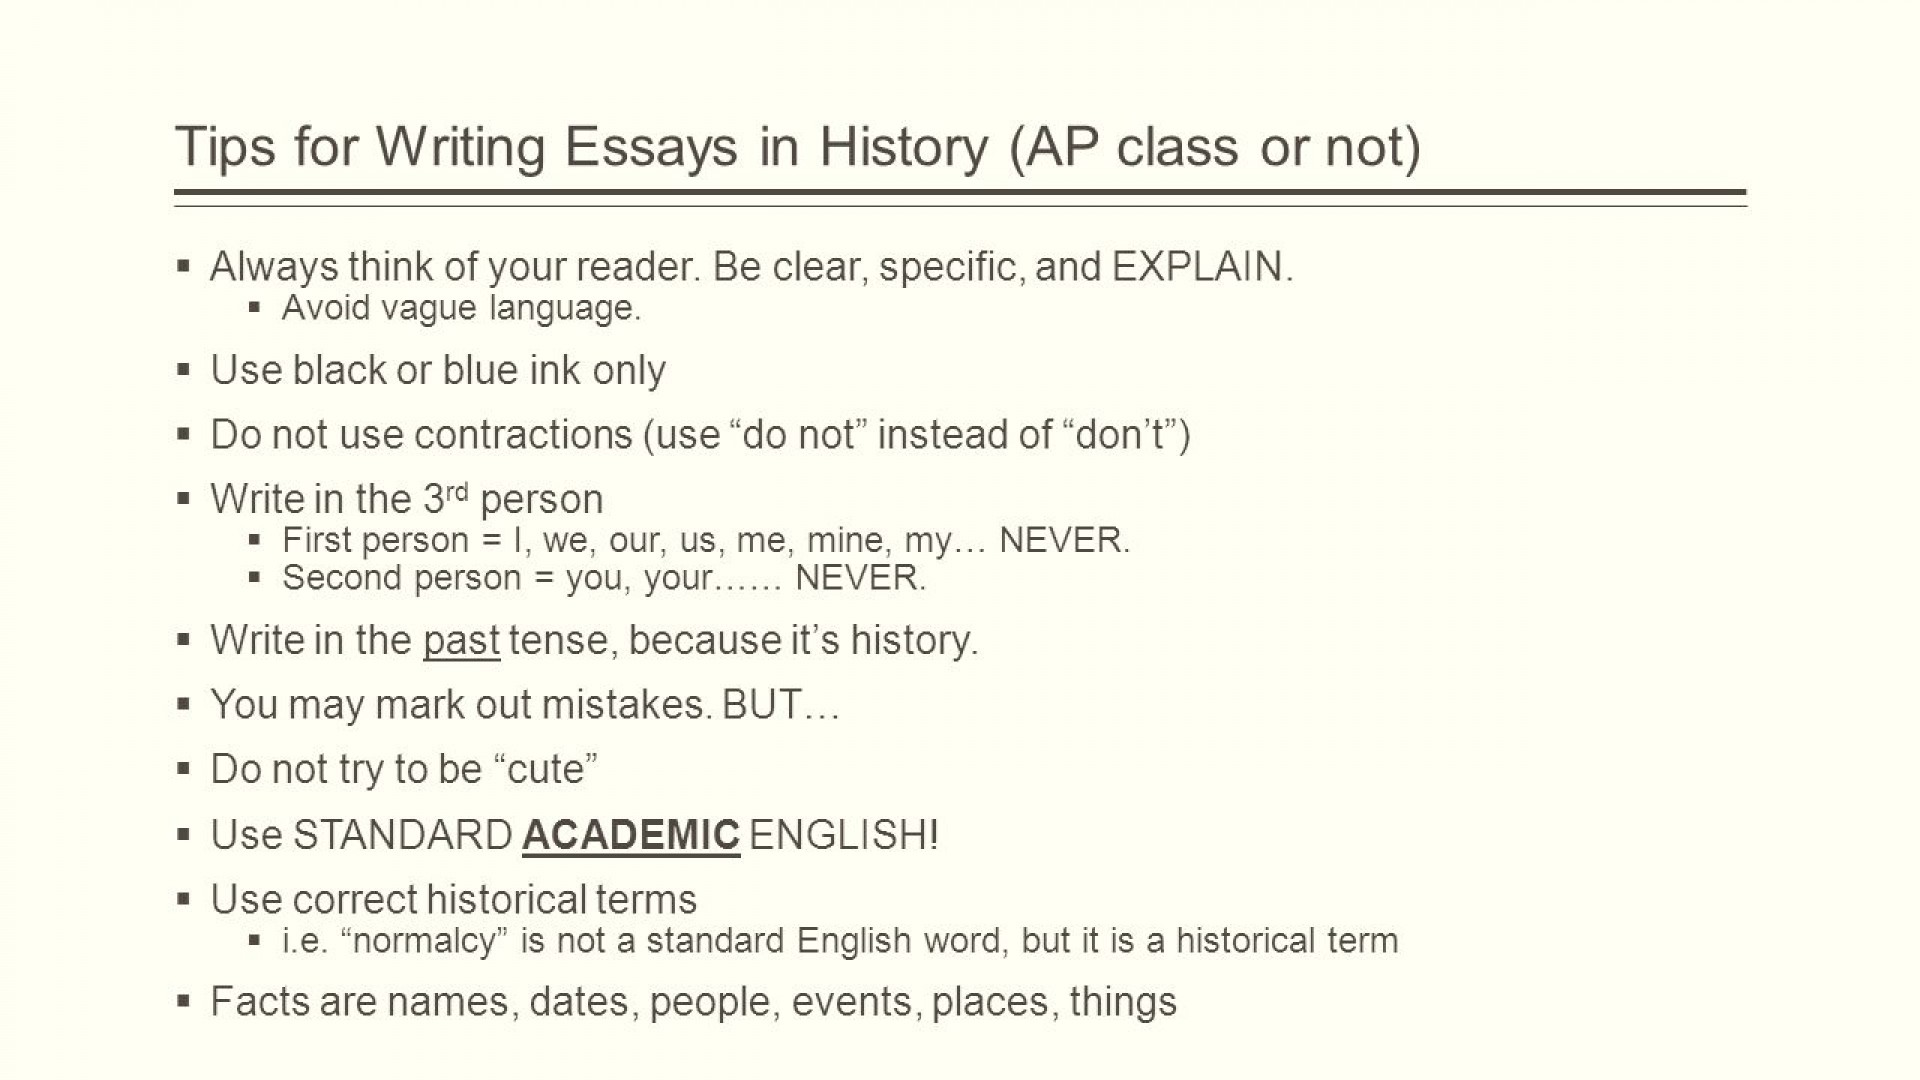 002 Essay Example How To Write Long The Question Ppt Video Online Download For Ap World Hi Fast Proposal Apush With Little Information Us History In One Night Dreaded A College Quickly Good 1920